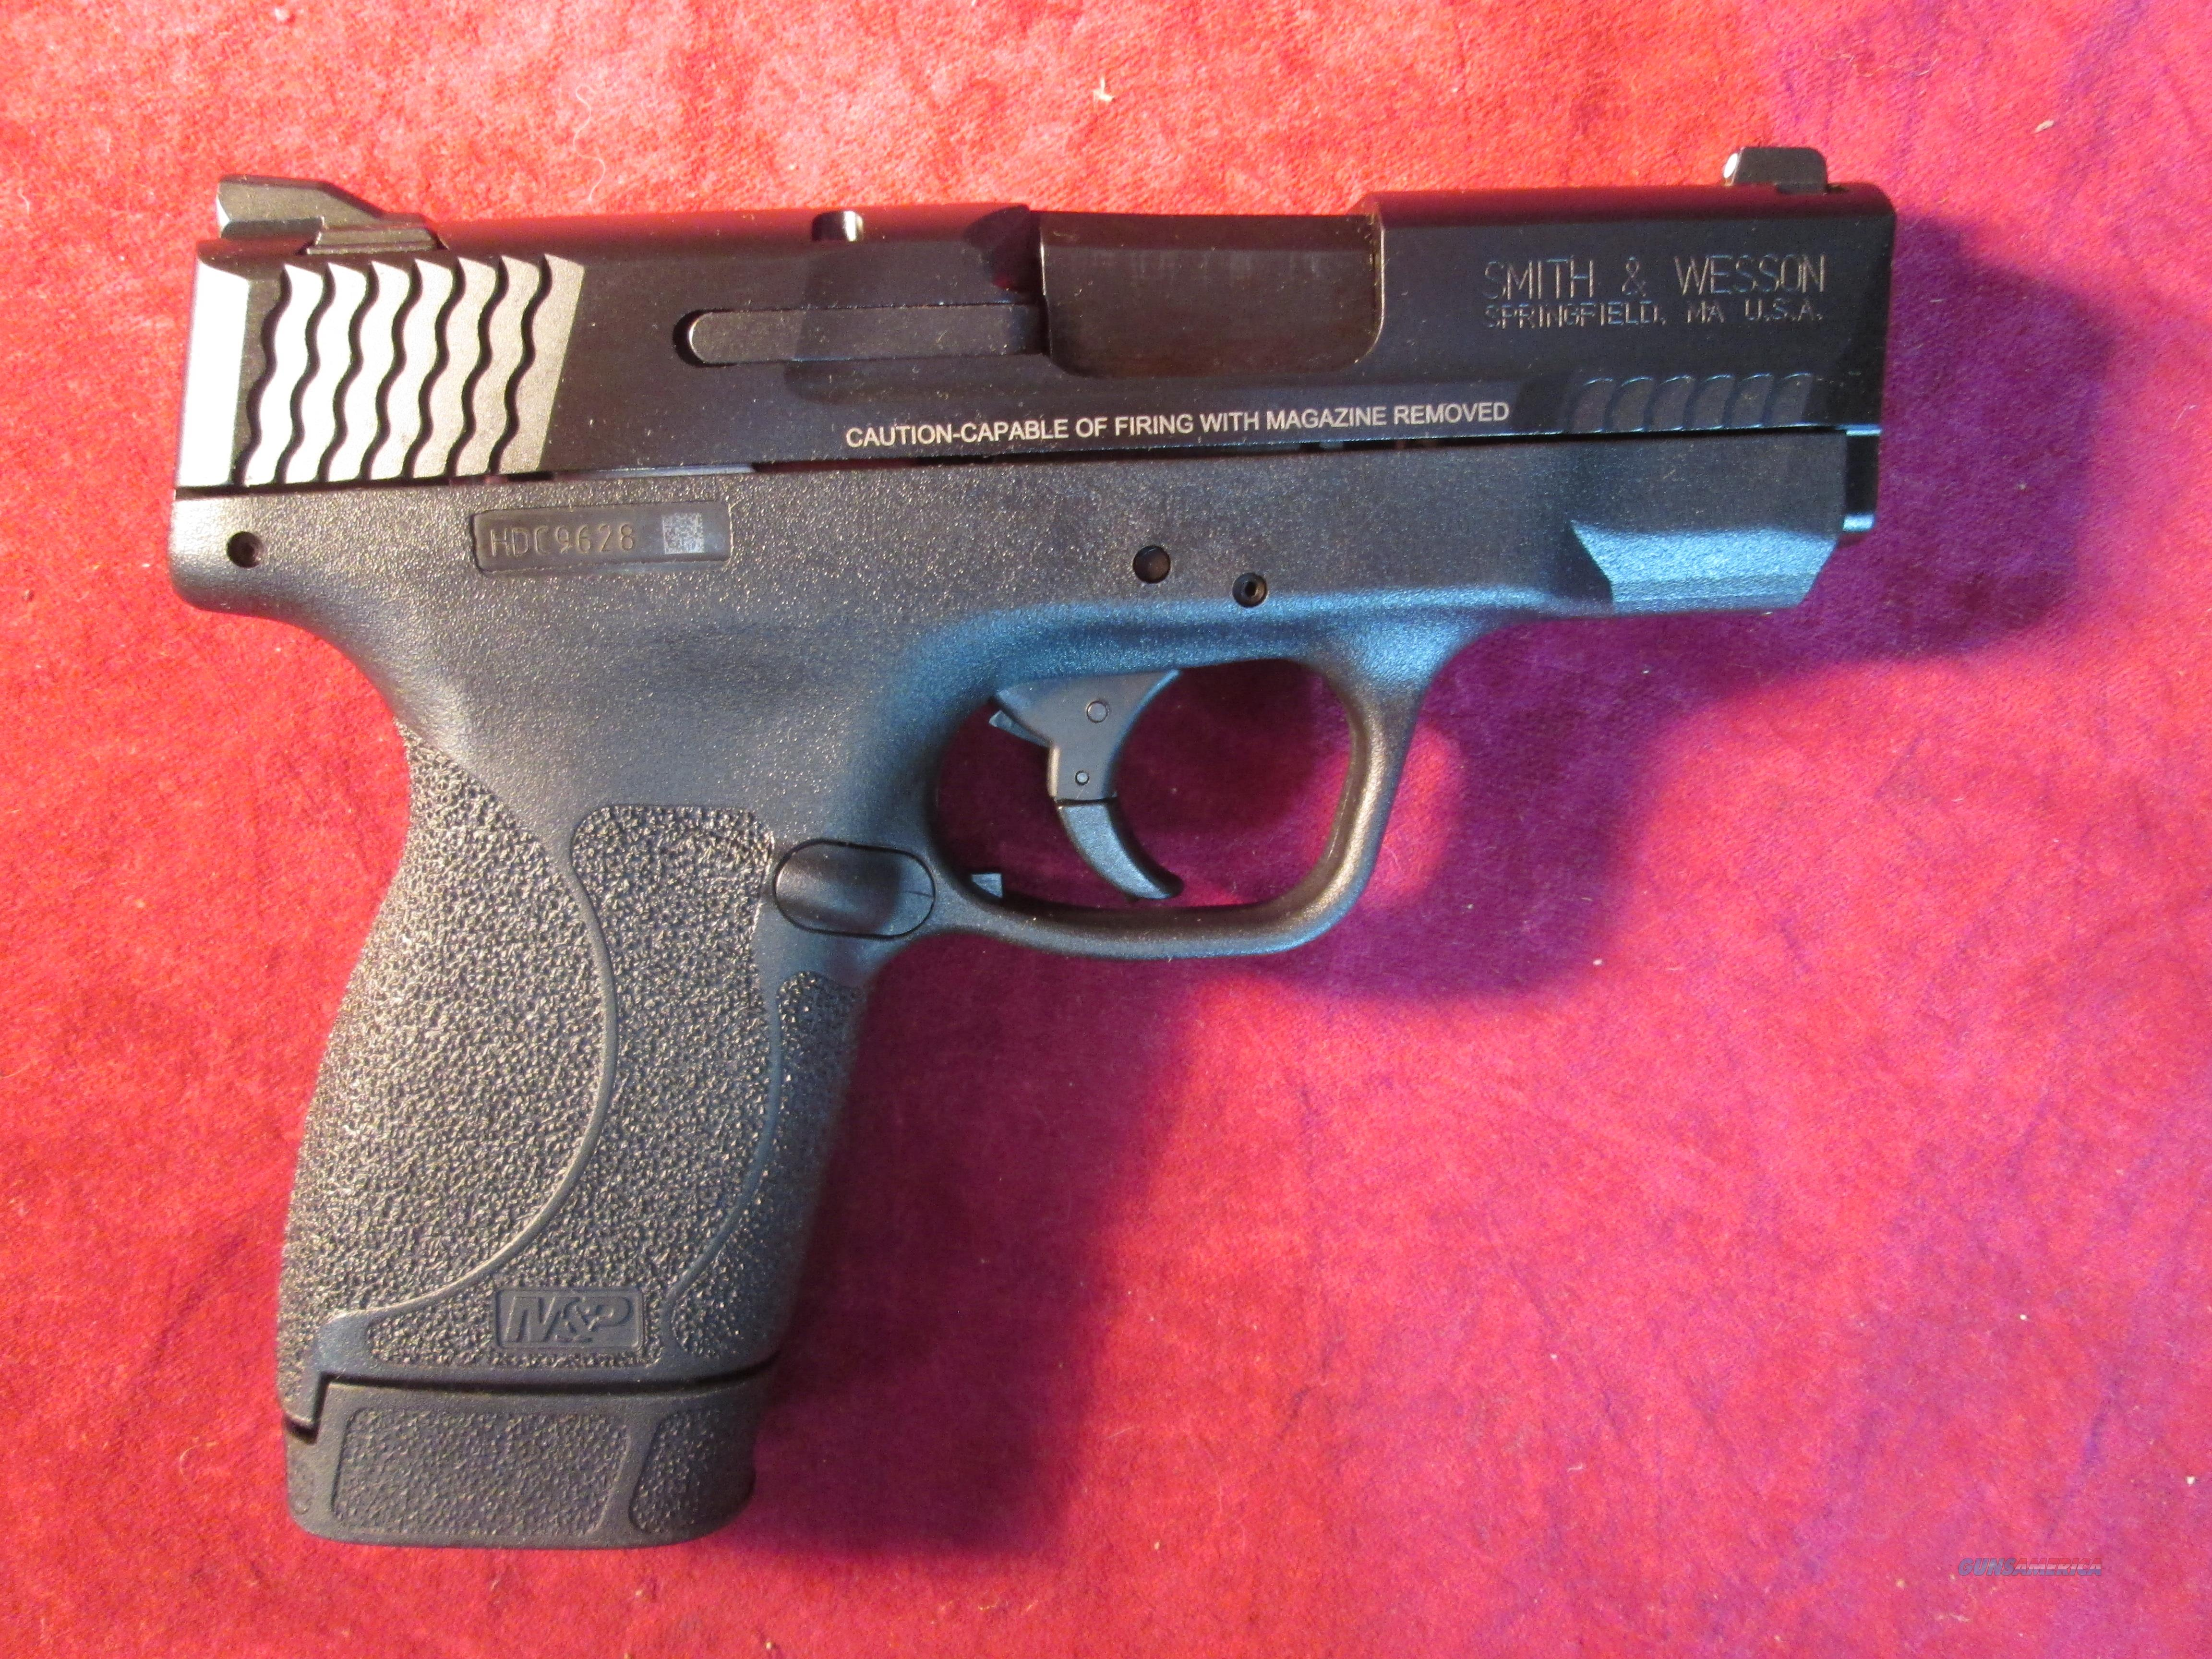 SMITH AND WESSON M&P SHIELD 45ACP W/ NO SAFETY NEW (11531)   Guns > Pistols > Smith & Wesson Pistols - Autos > Polymer Frame